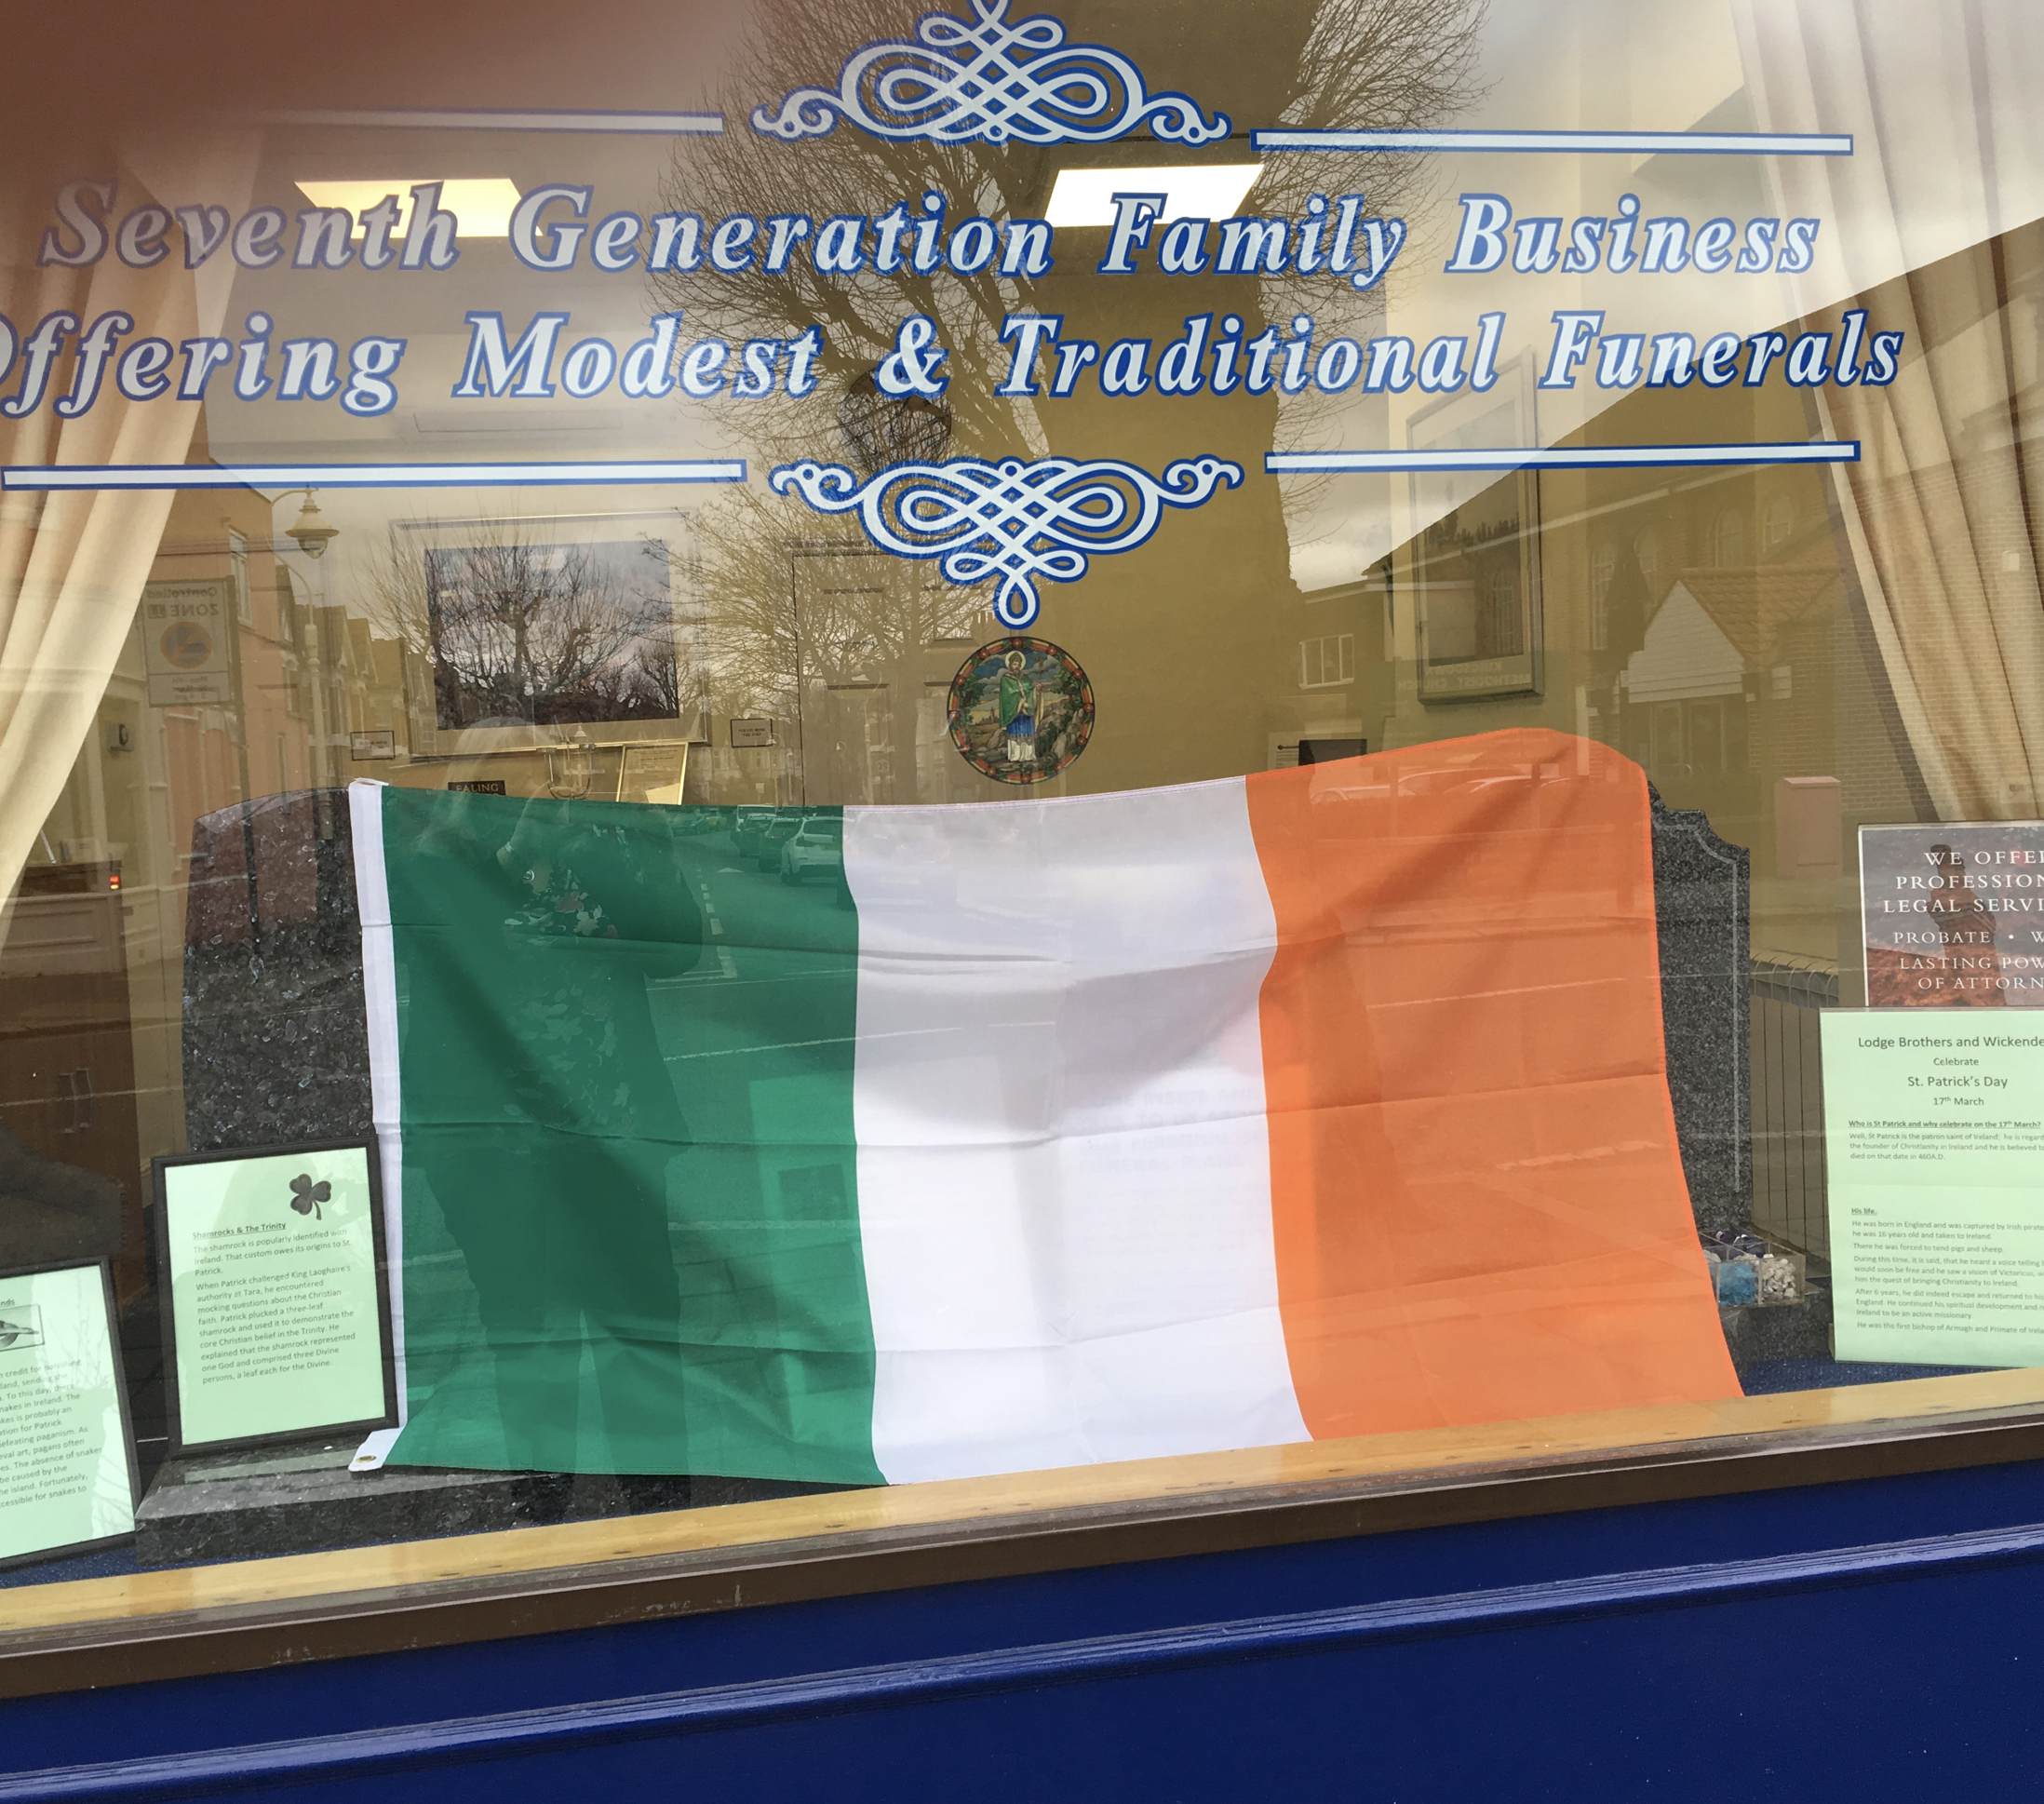 Happy St Patrick's Day from Ealing Branch